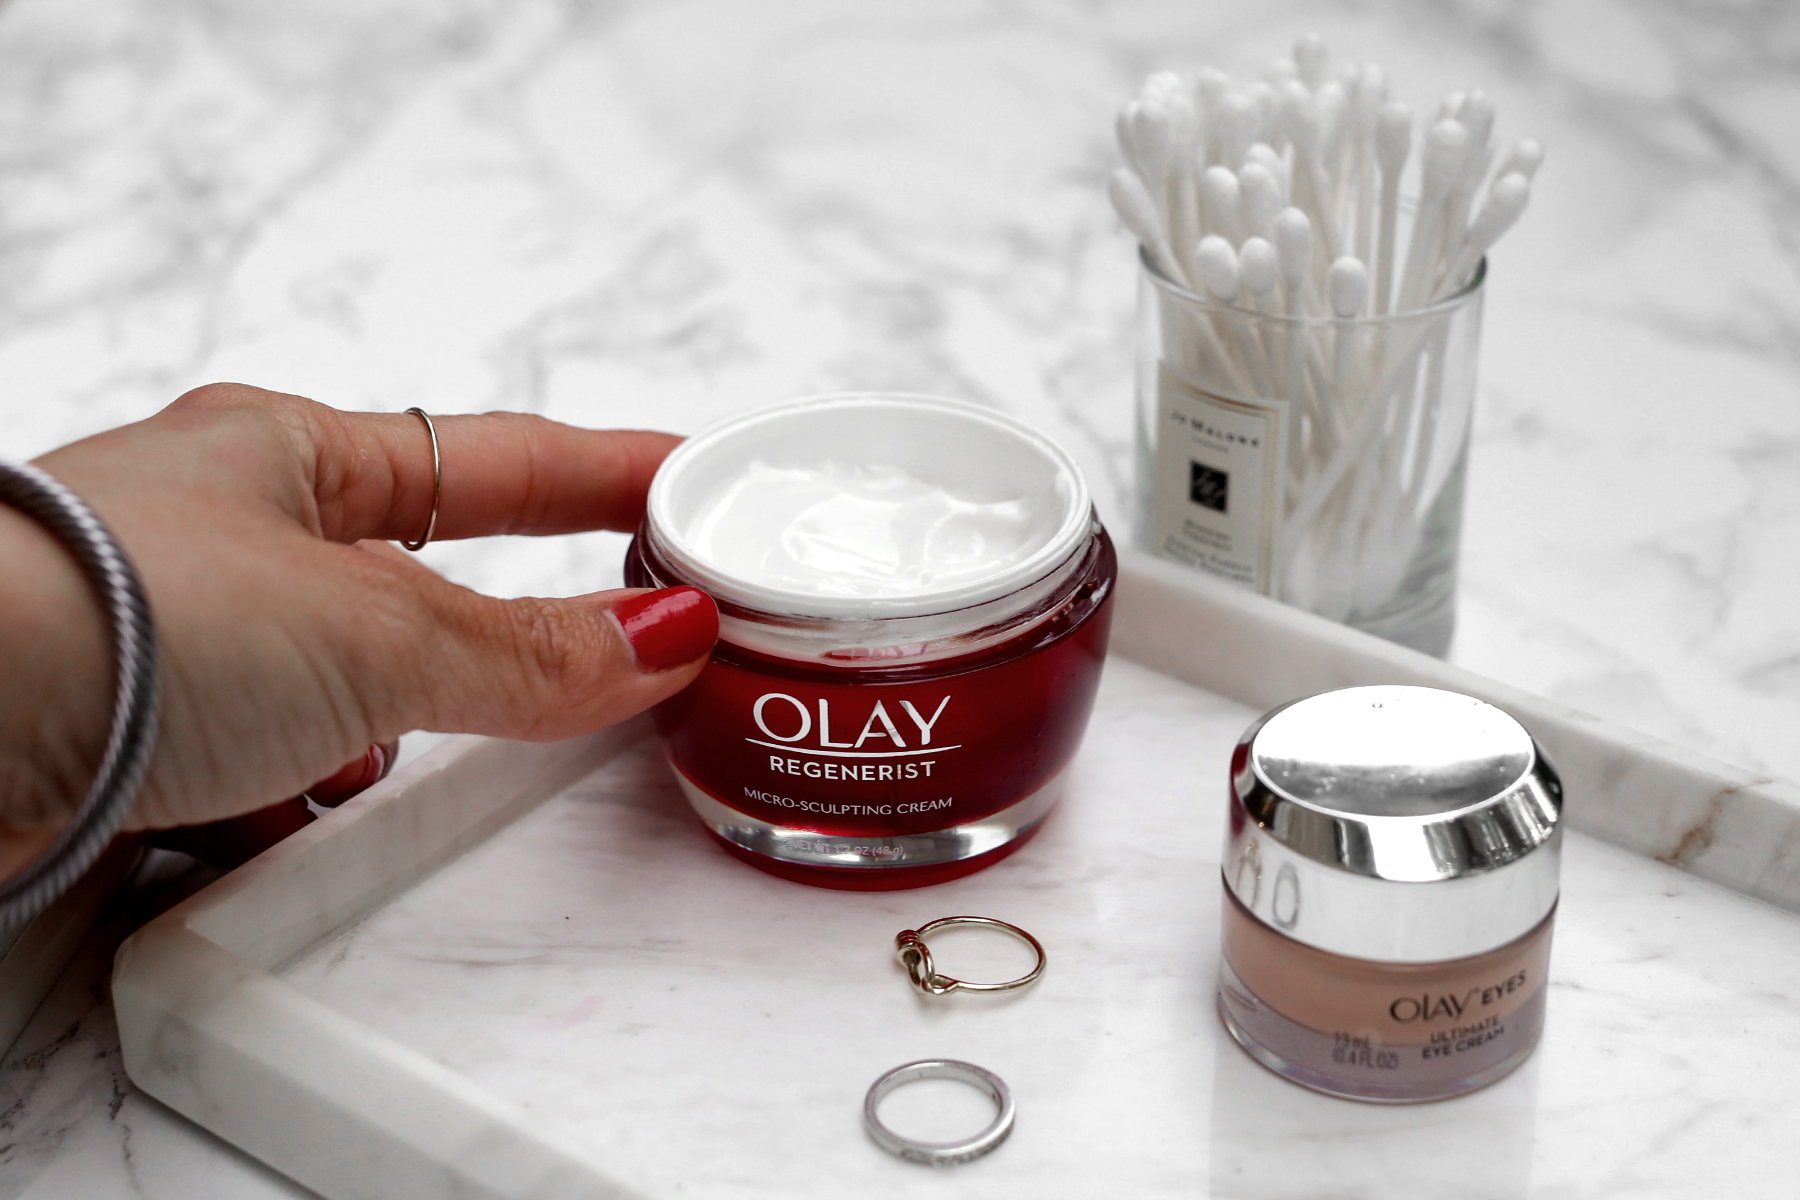 Olay Regenerist Micro Sculpting cream review -Skincare for your thirties and beyond_2761.jpg